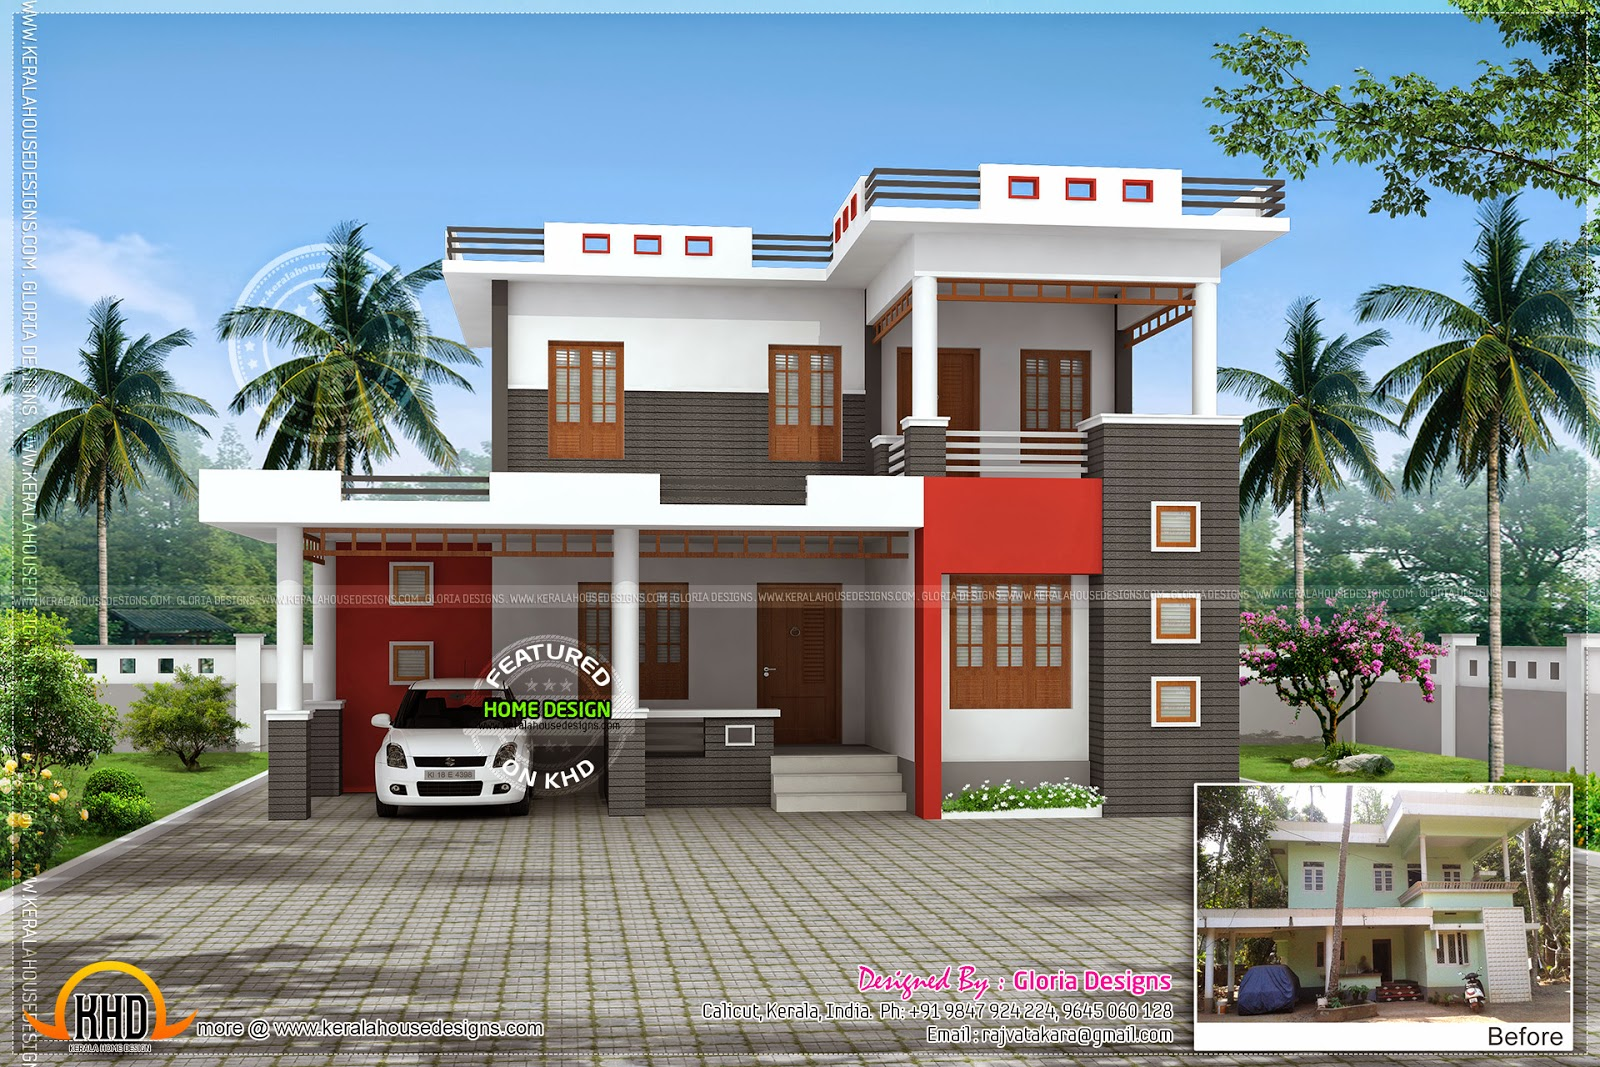 renovation 3d model for an old house kerala home design and floor plans. Black Bedroom Furniture Sets. Home Design Ideas